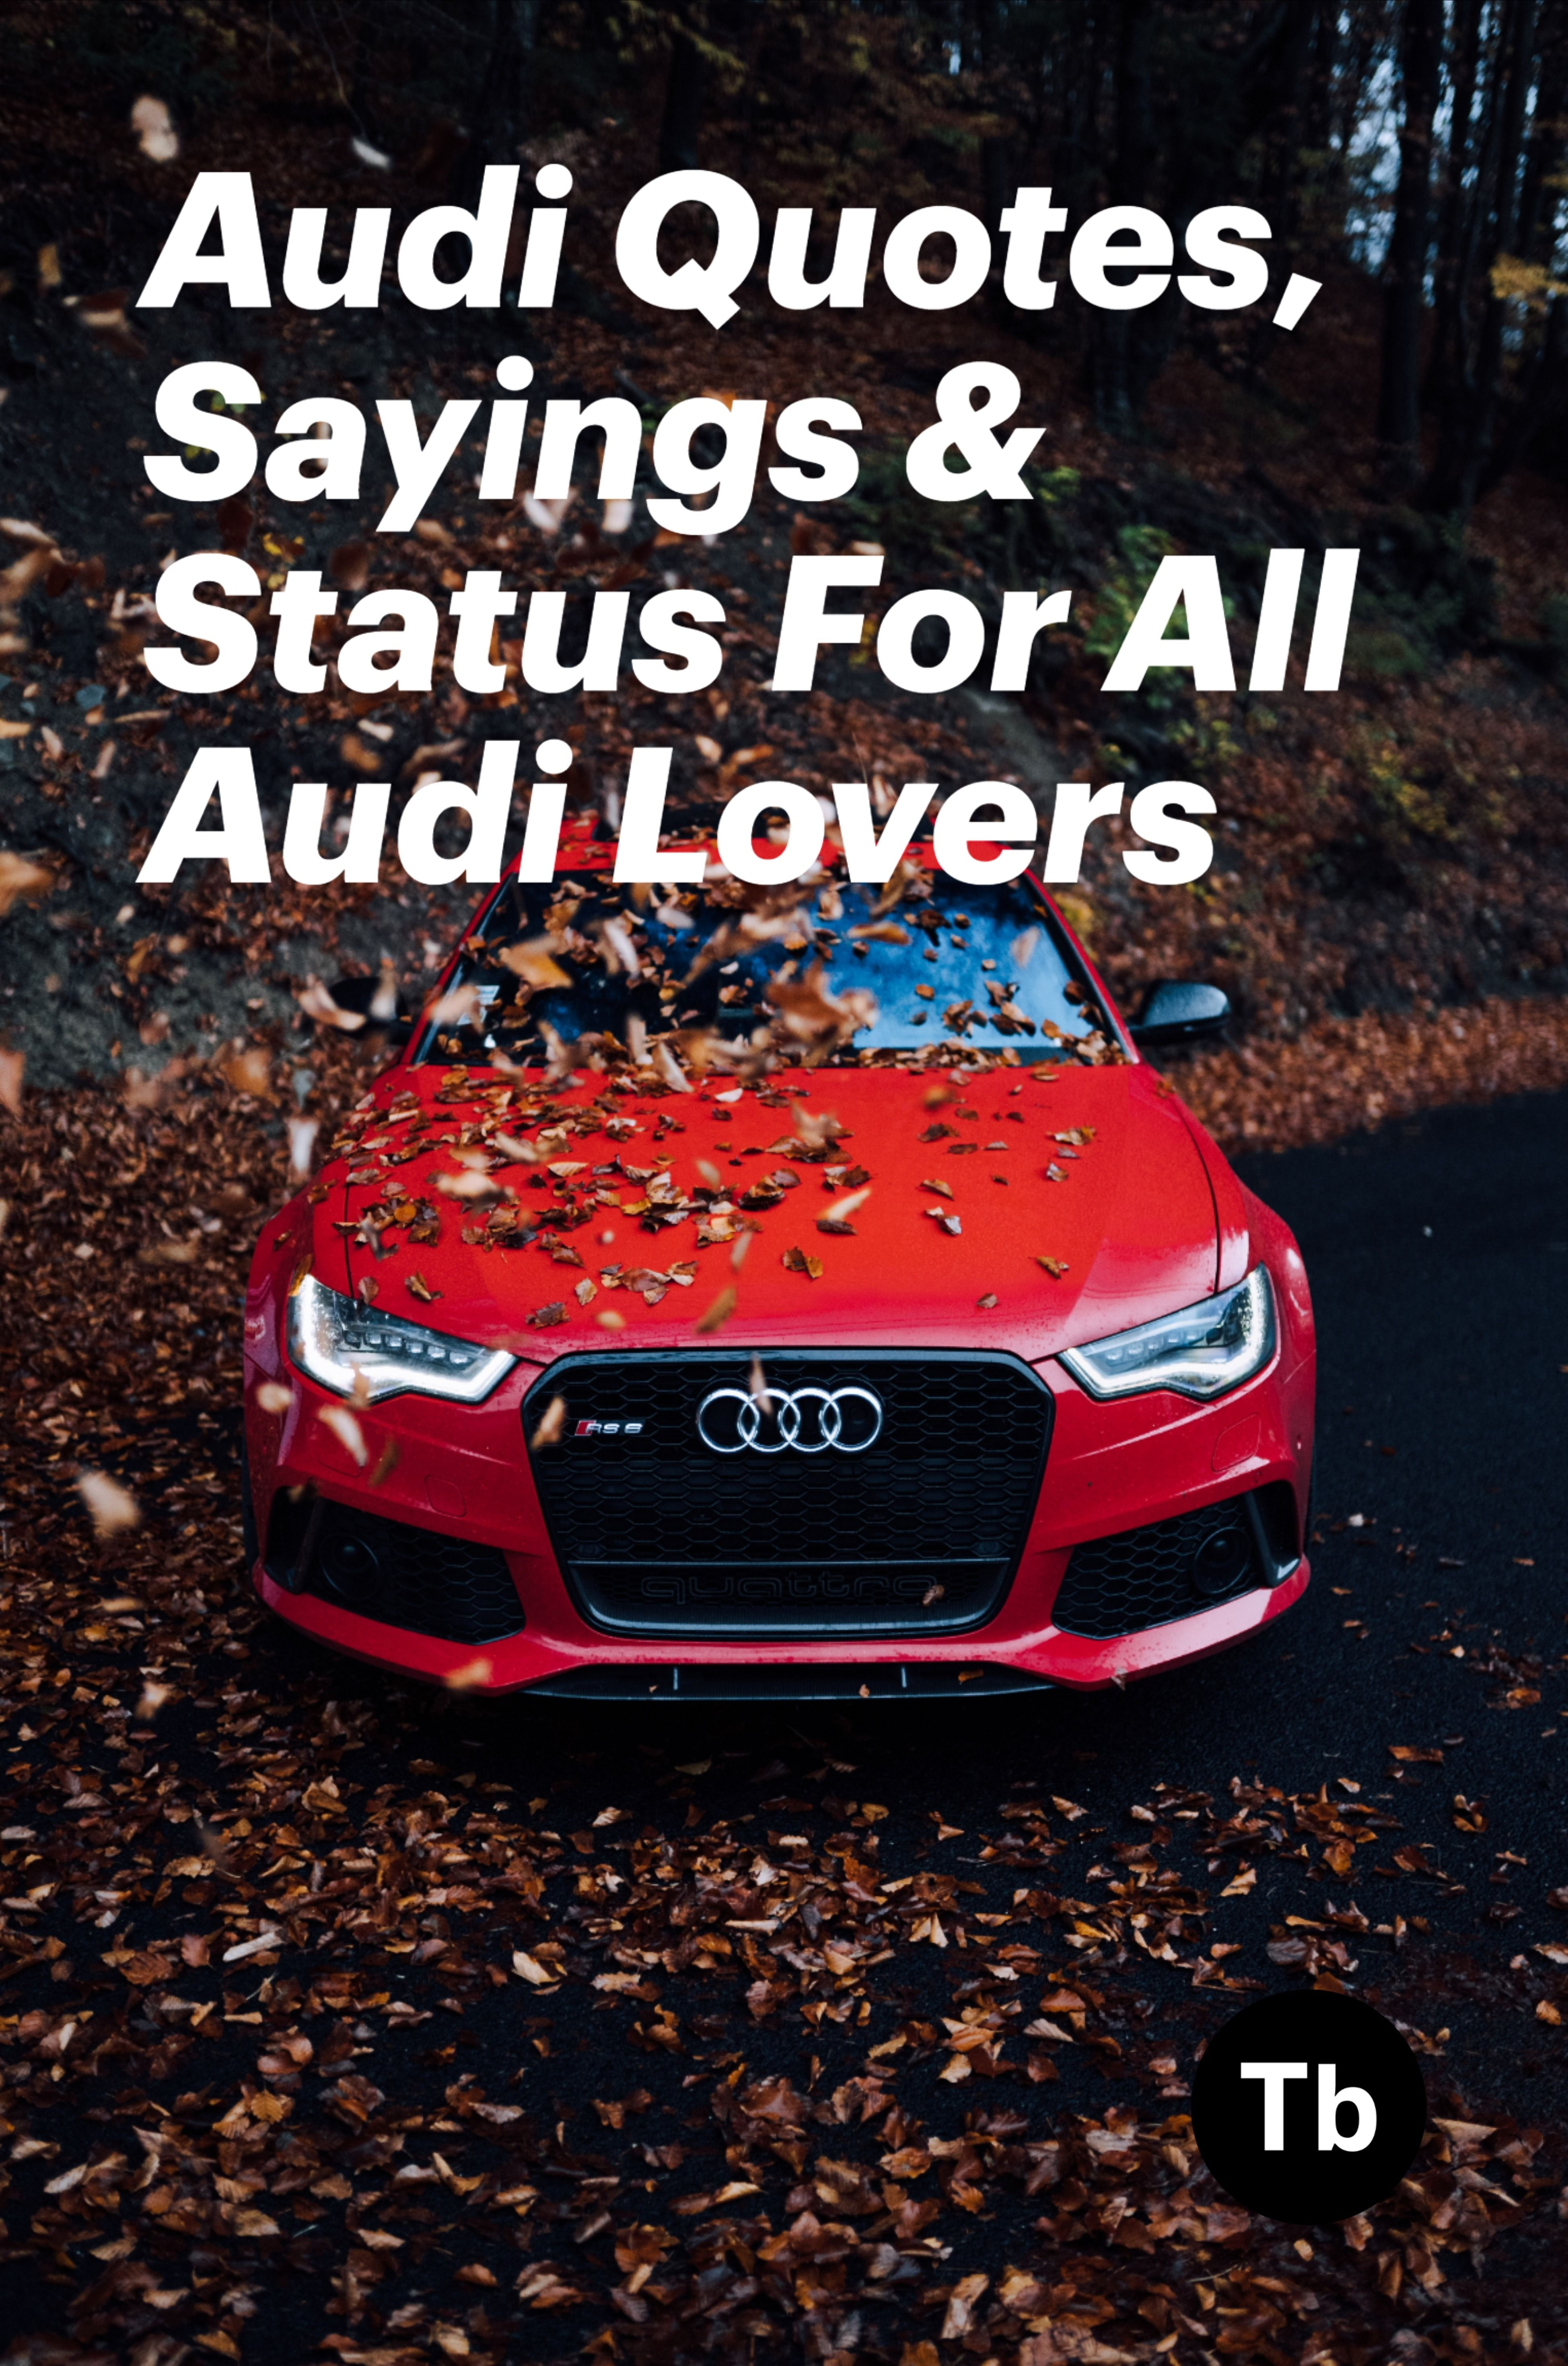 73 audi quotes sayings status for all audi lovers